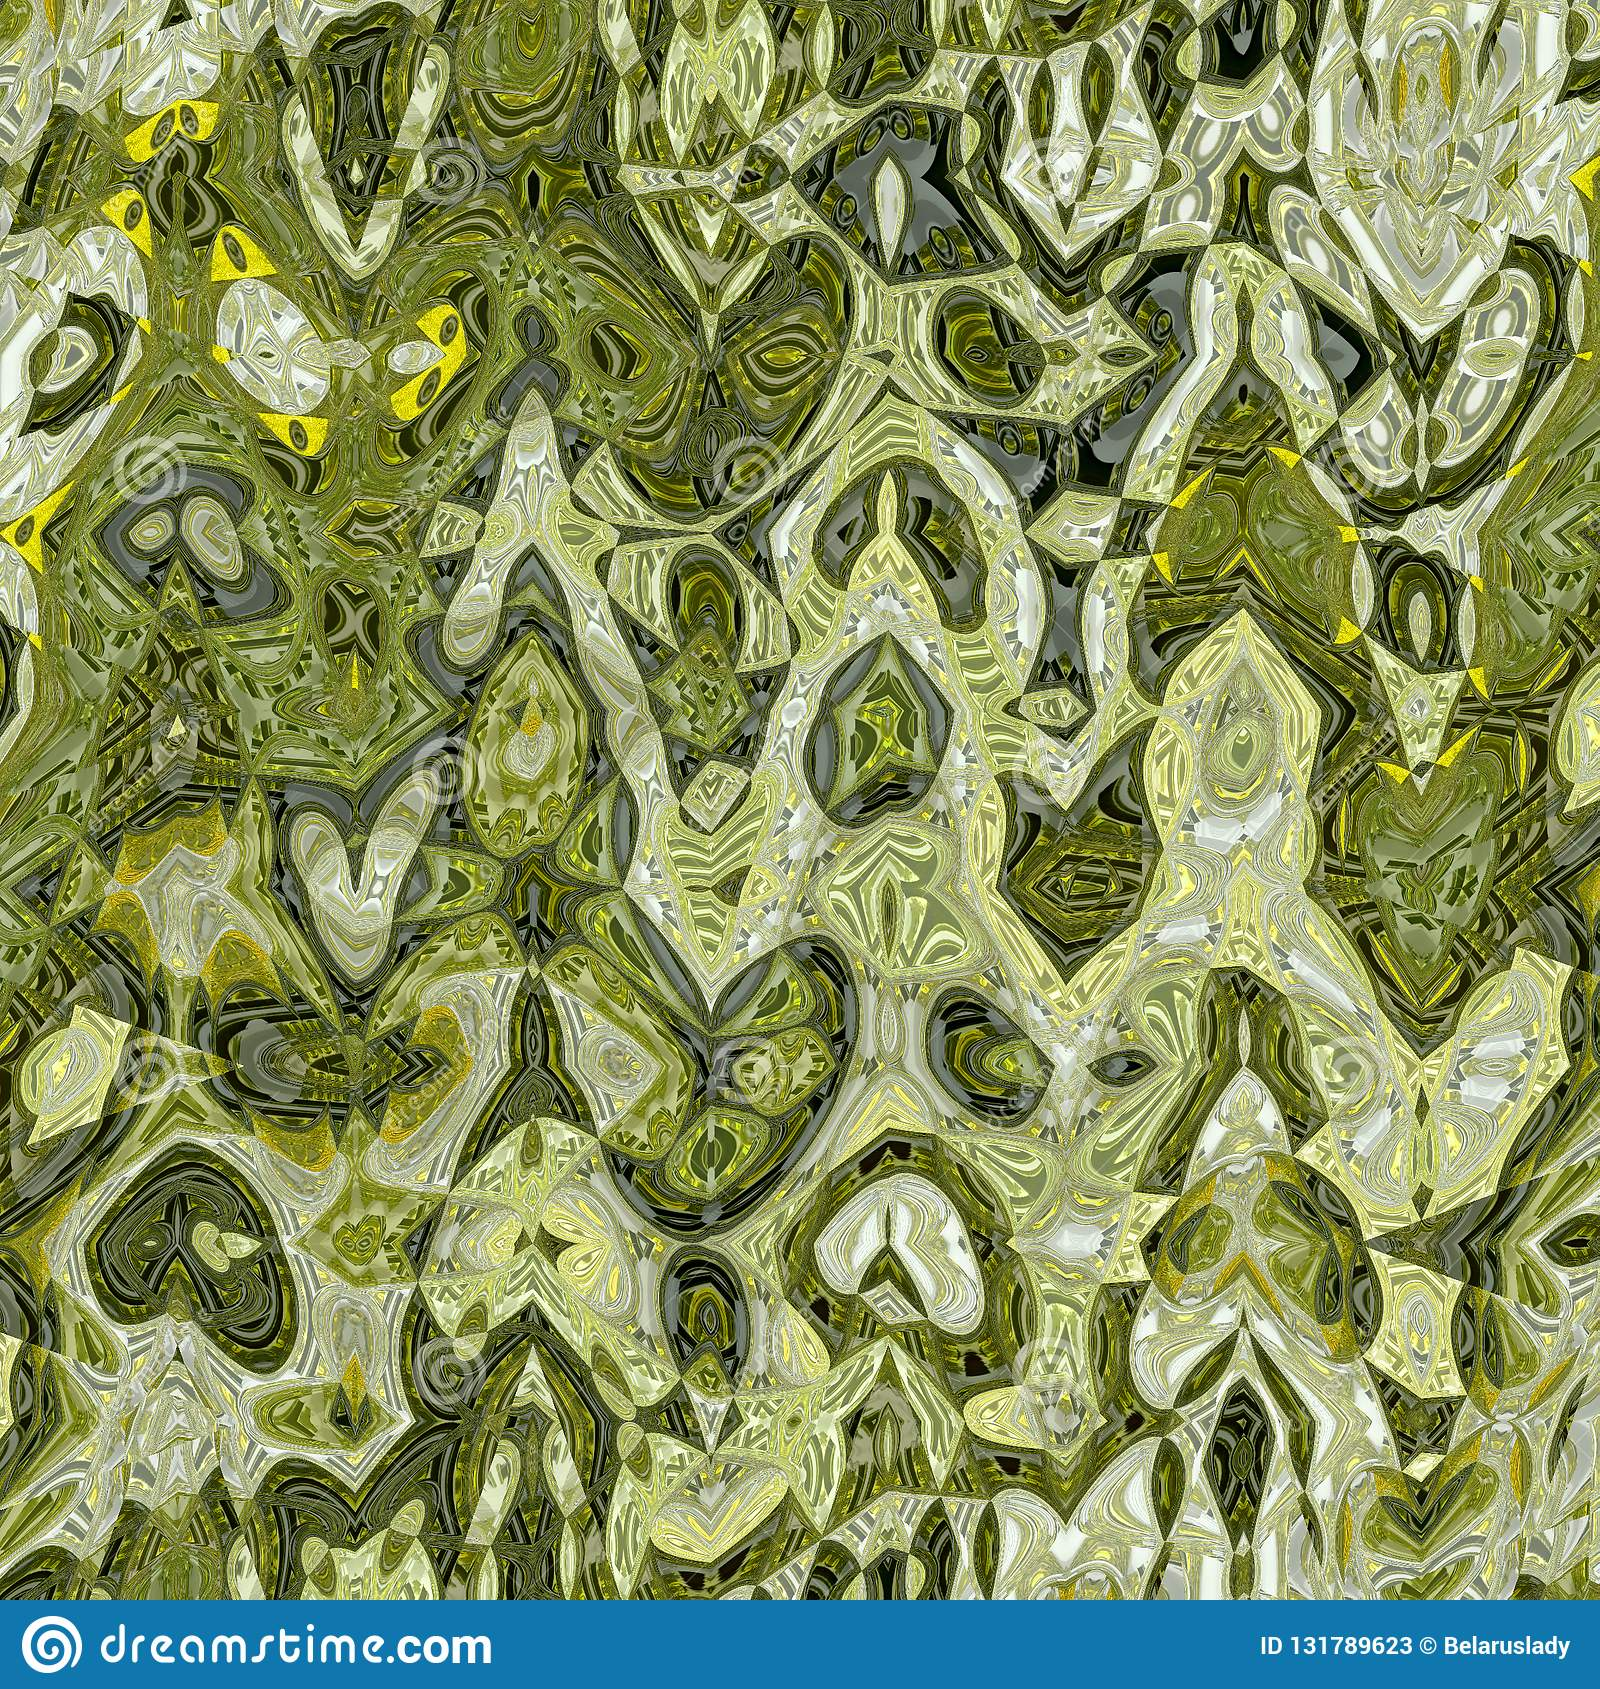 Going green and ocher pattern with watercolor effect and inkblot